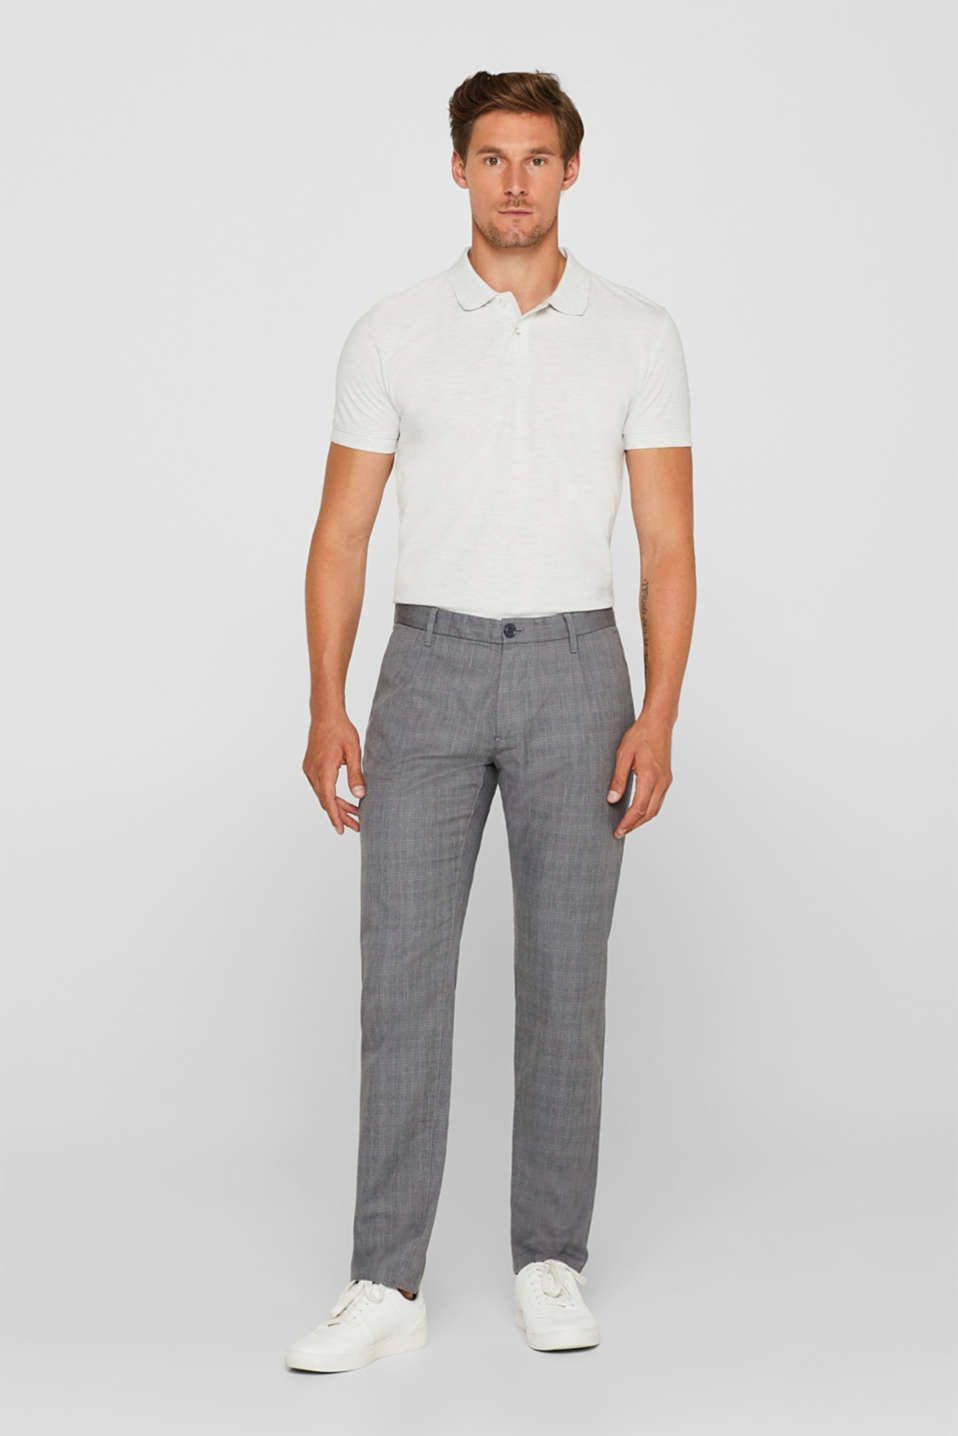 Trousers with a check pattern, made of stretch cotton, GREY, detail image number 1